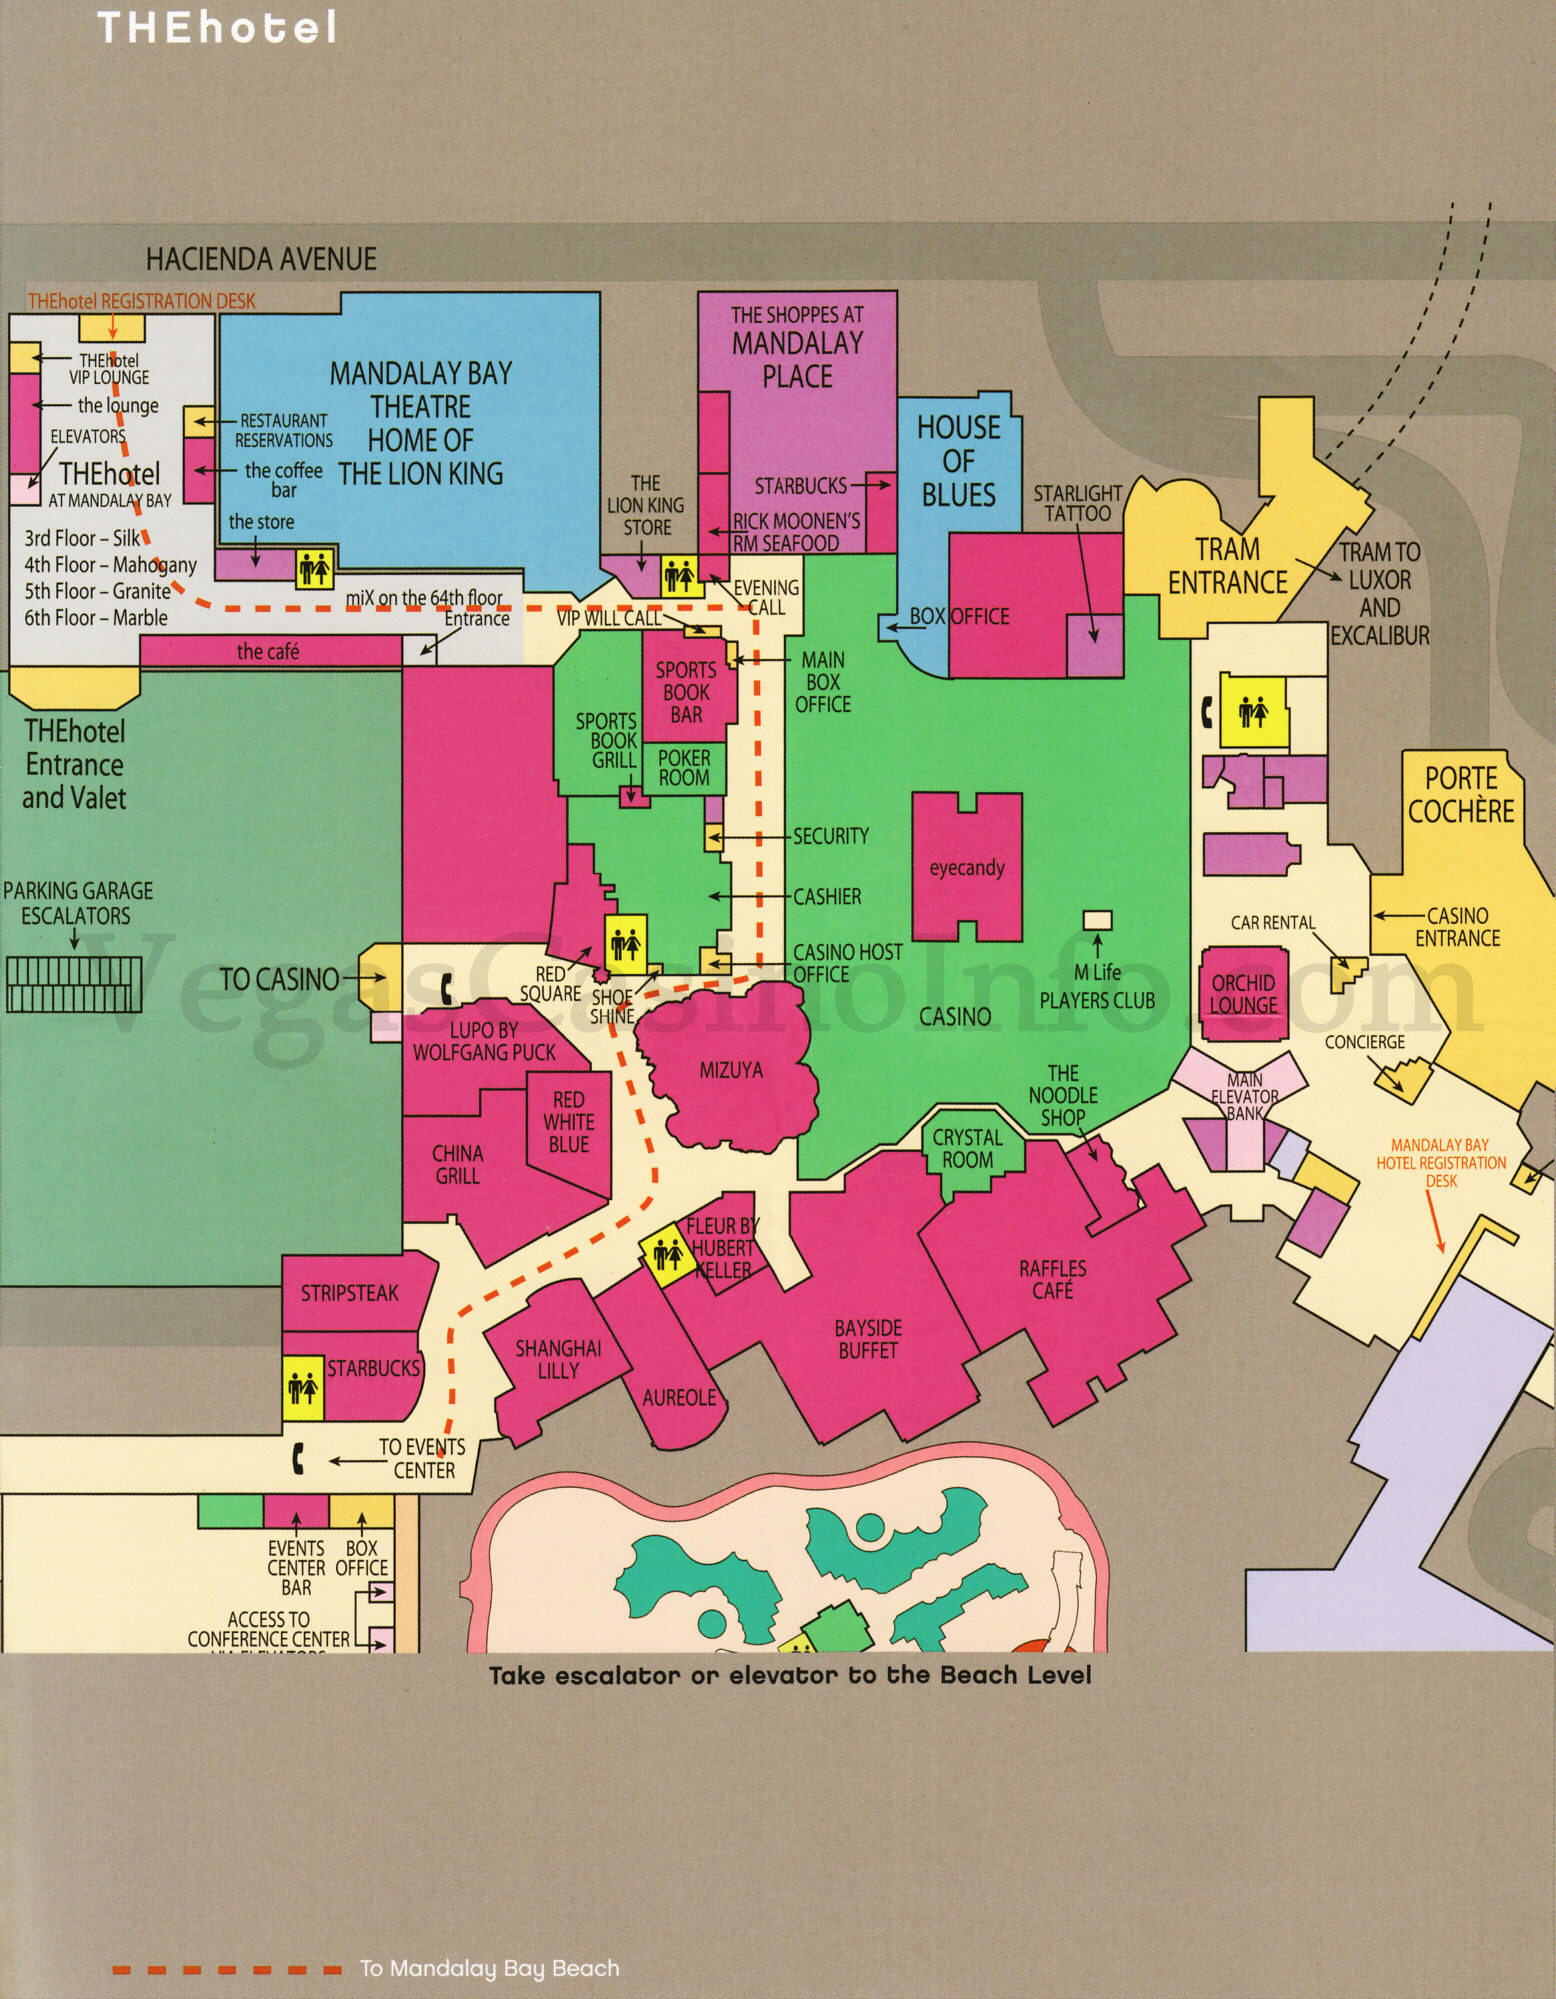 Las Vegas Casino Property Maps and Floor Plans VegasCasinoInfocom